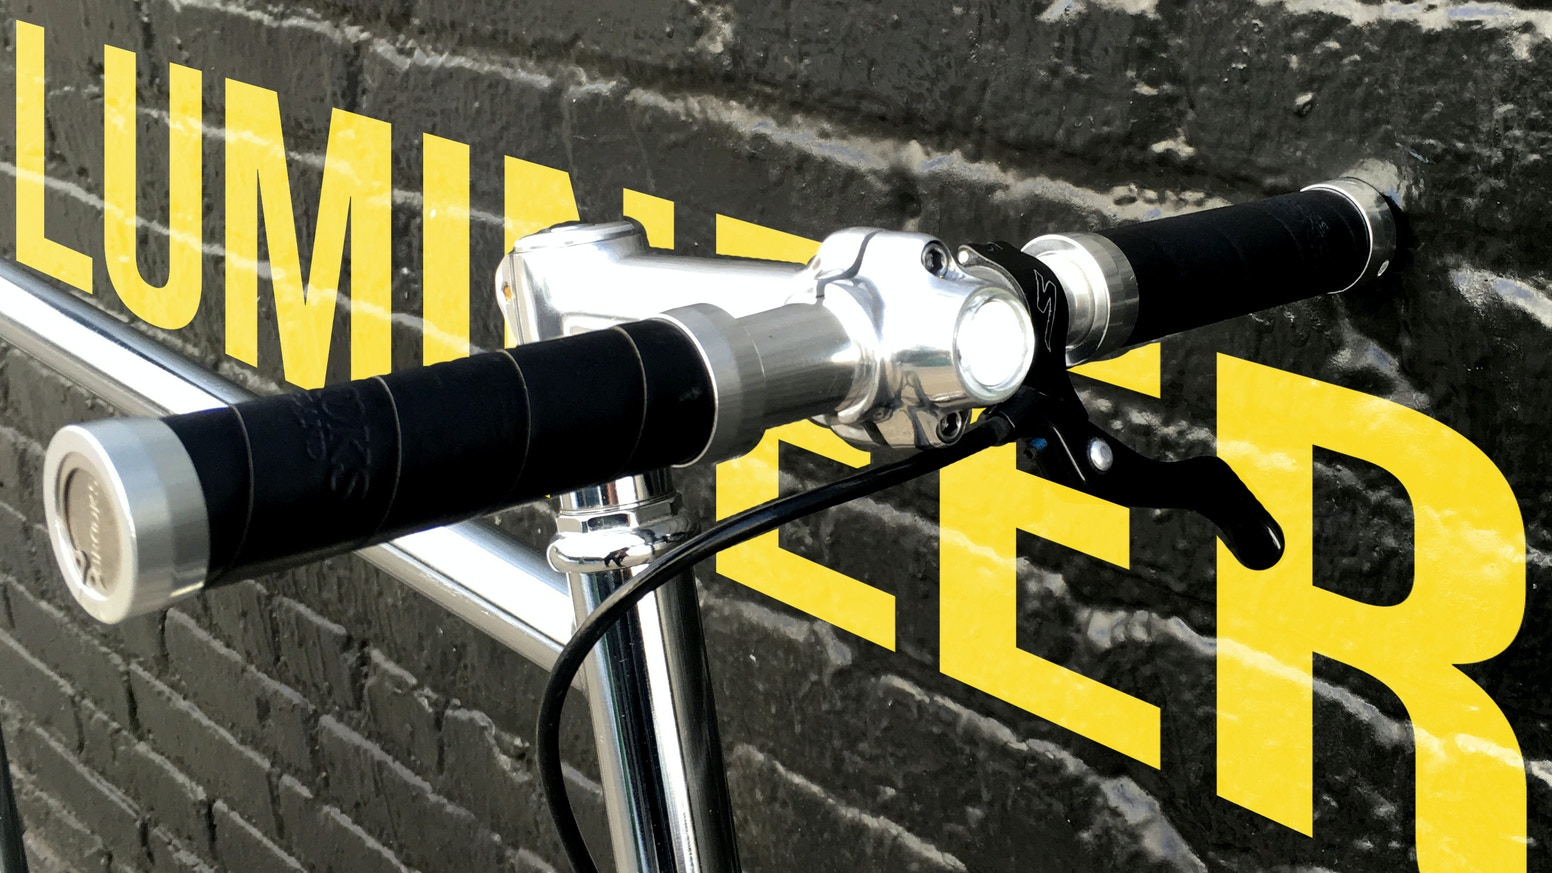 Lumineer is the bike light no one one will notice, until it matters. It seamlessly blends into your bike's sleek, sturdy frame.